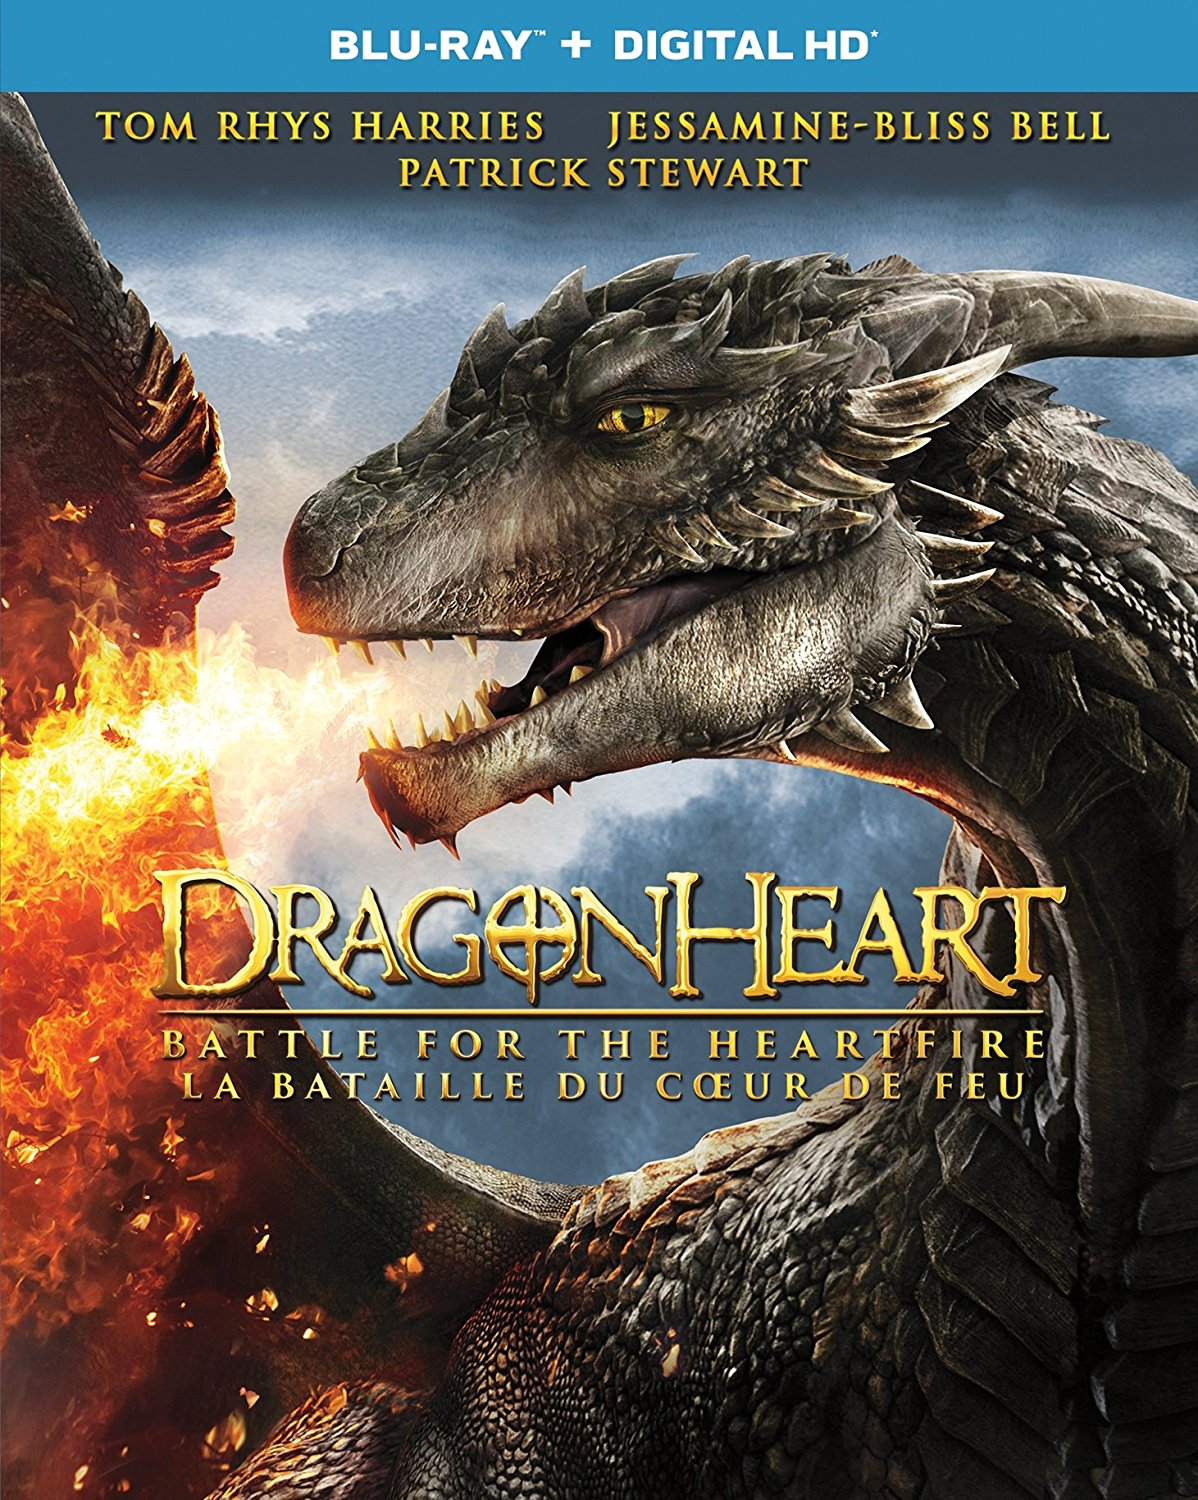 Dragonheart: Battle for the Heartfire Blu-ray